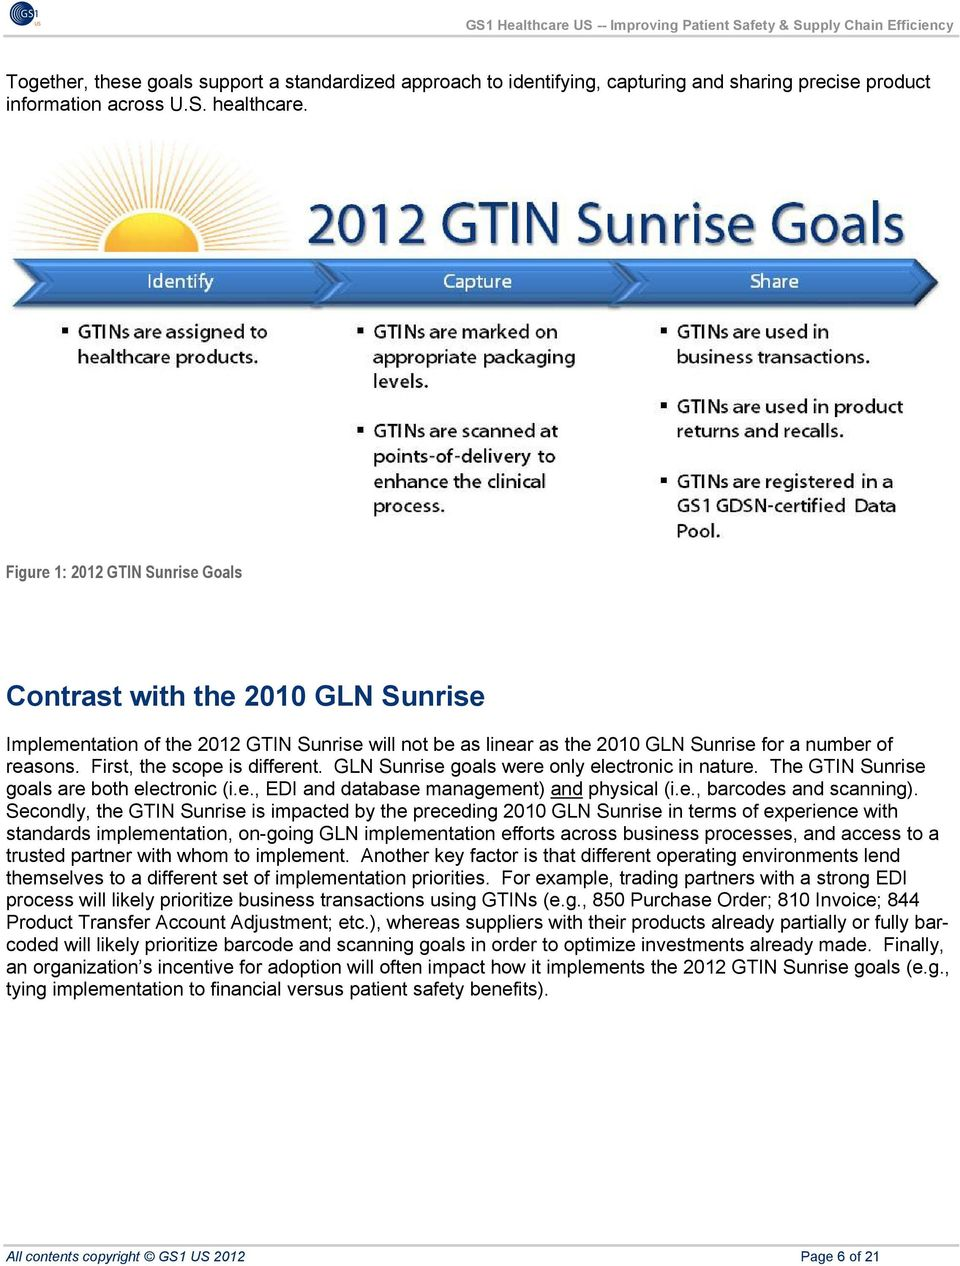 First, the scope is different. GLN Sunrise goals were only electronic in nature. The GTIN Sunrise goals are both electronic (i.e., EDI and database management) and physical (i.e., barcodes and scanning).